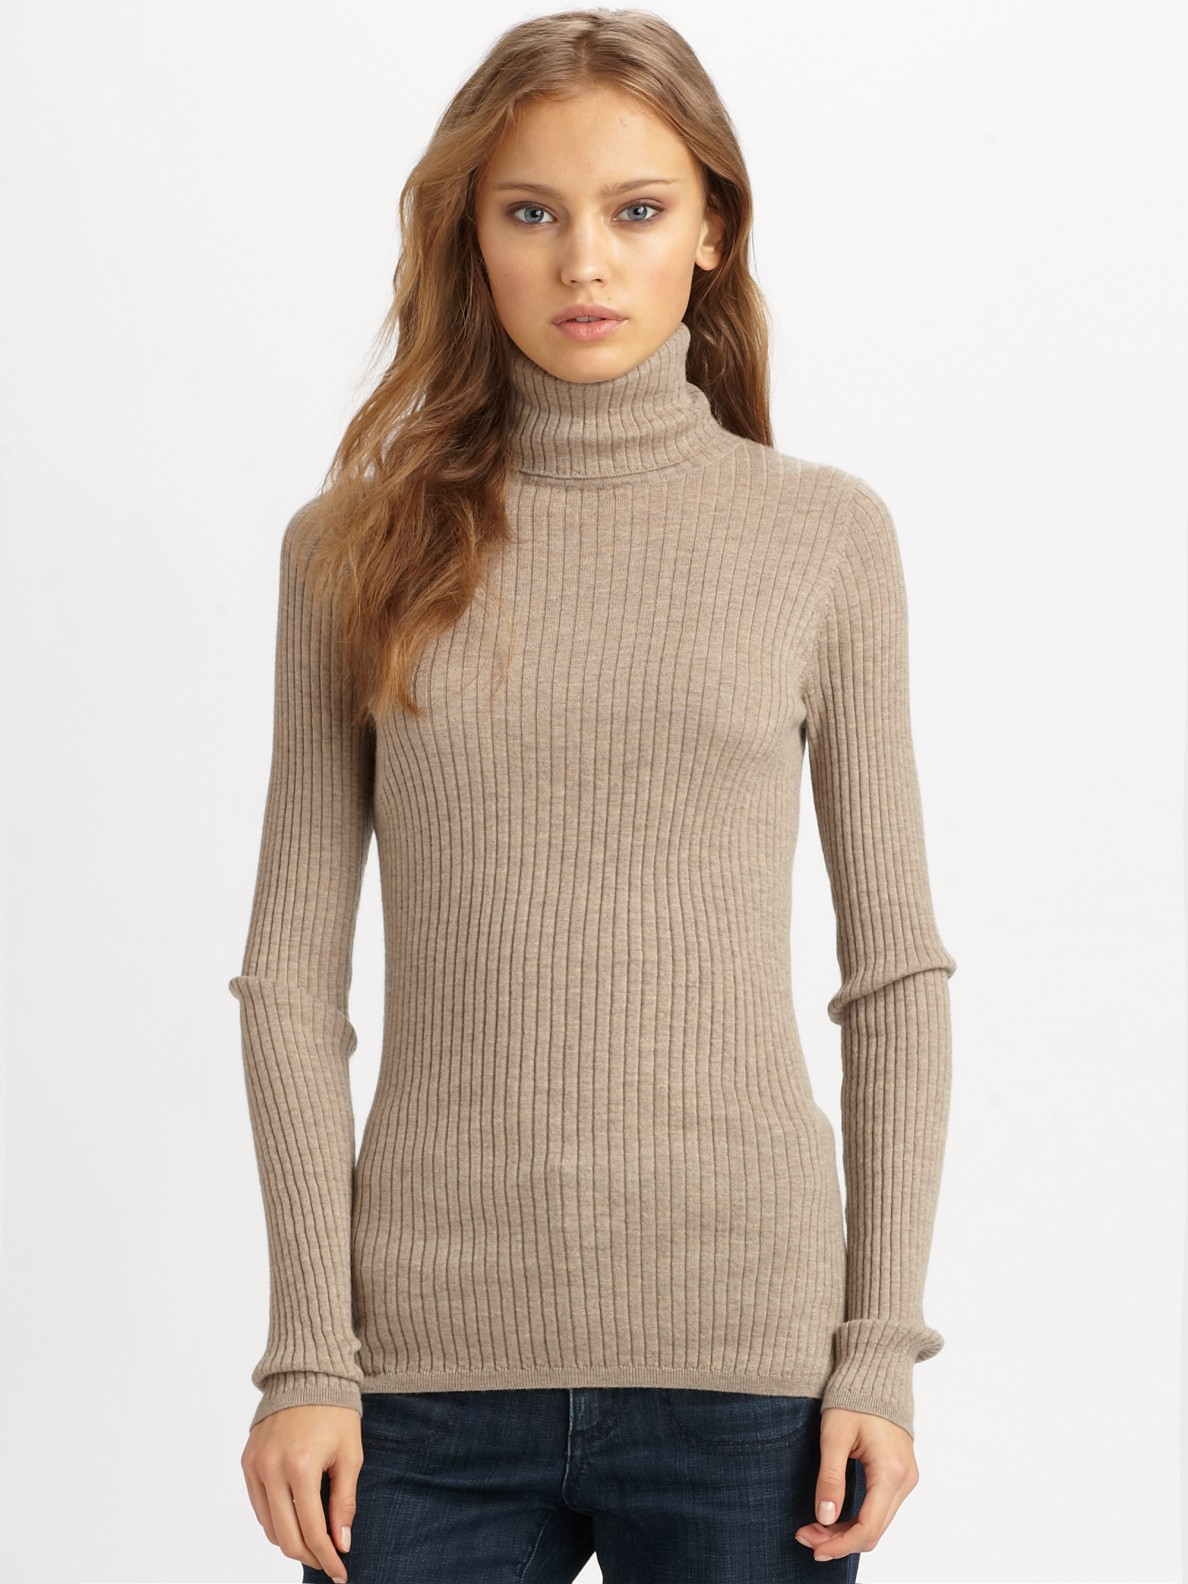 See Through Cable Knit Sweater